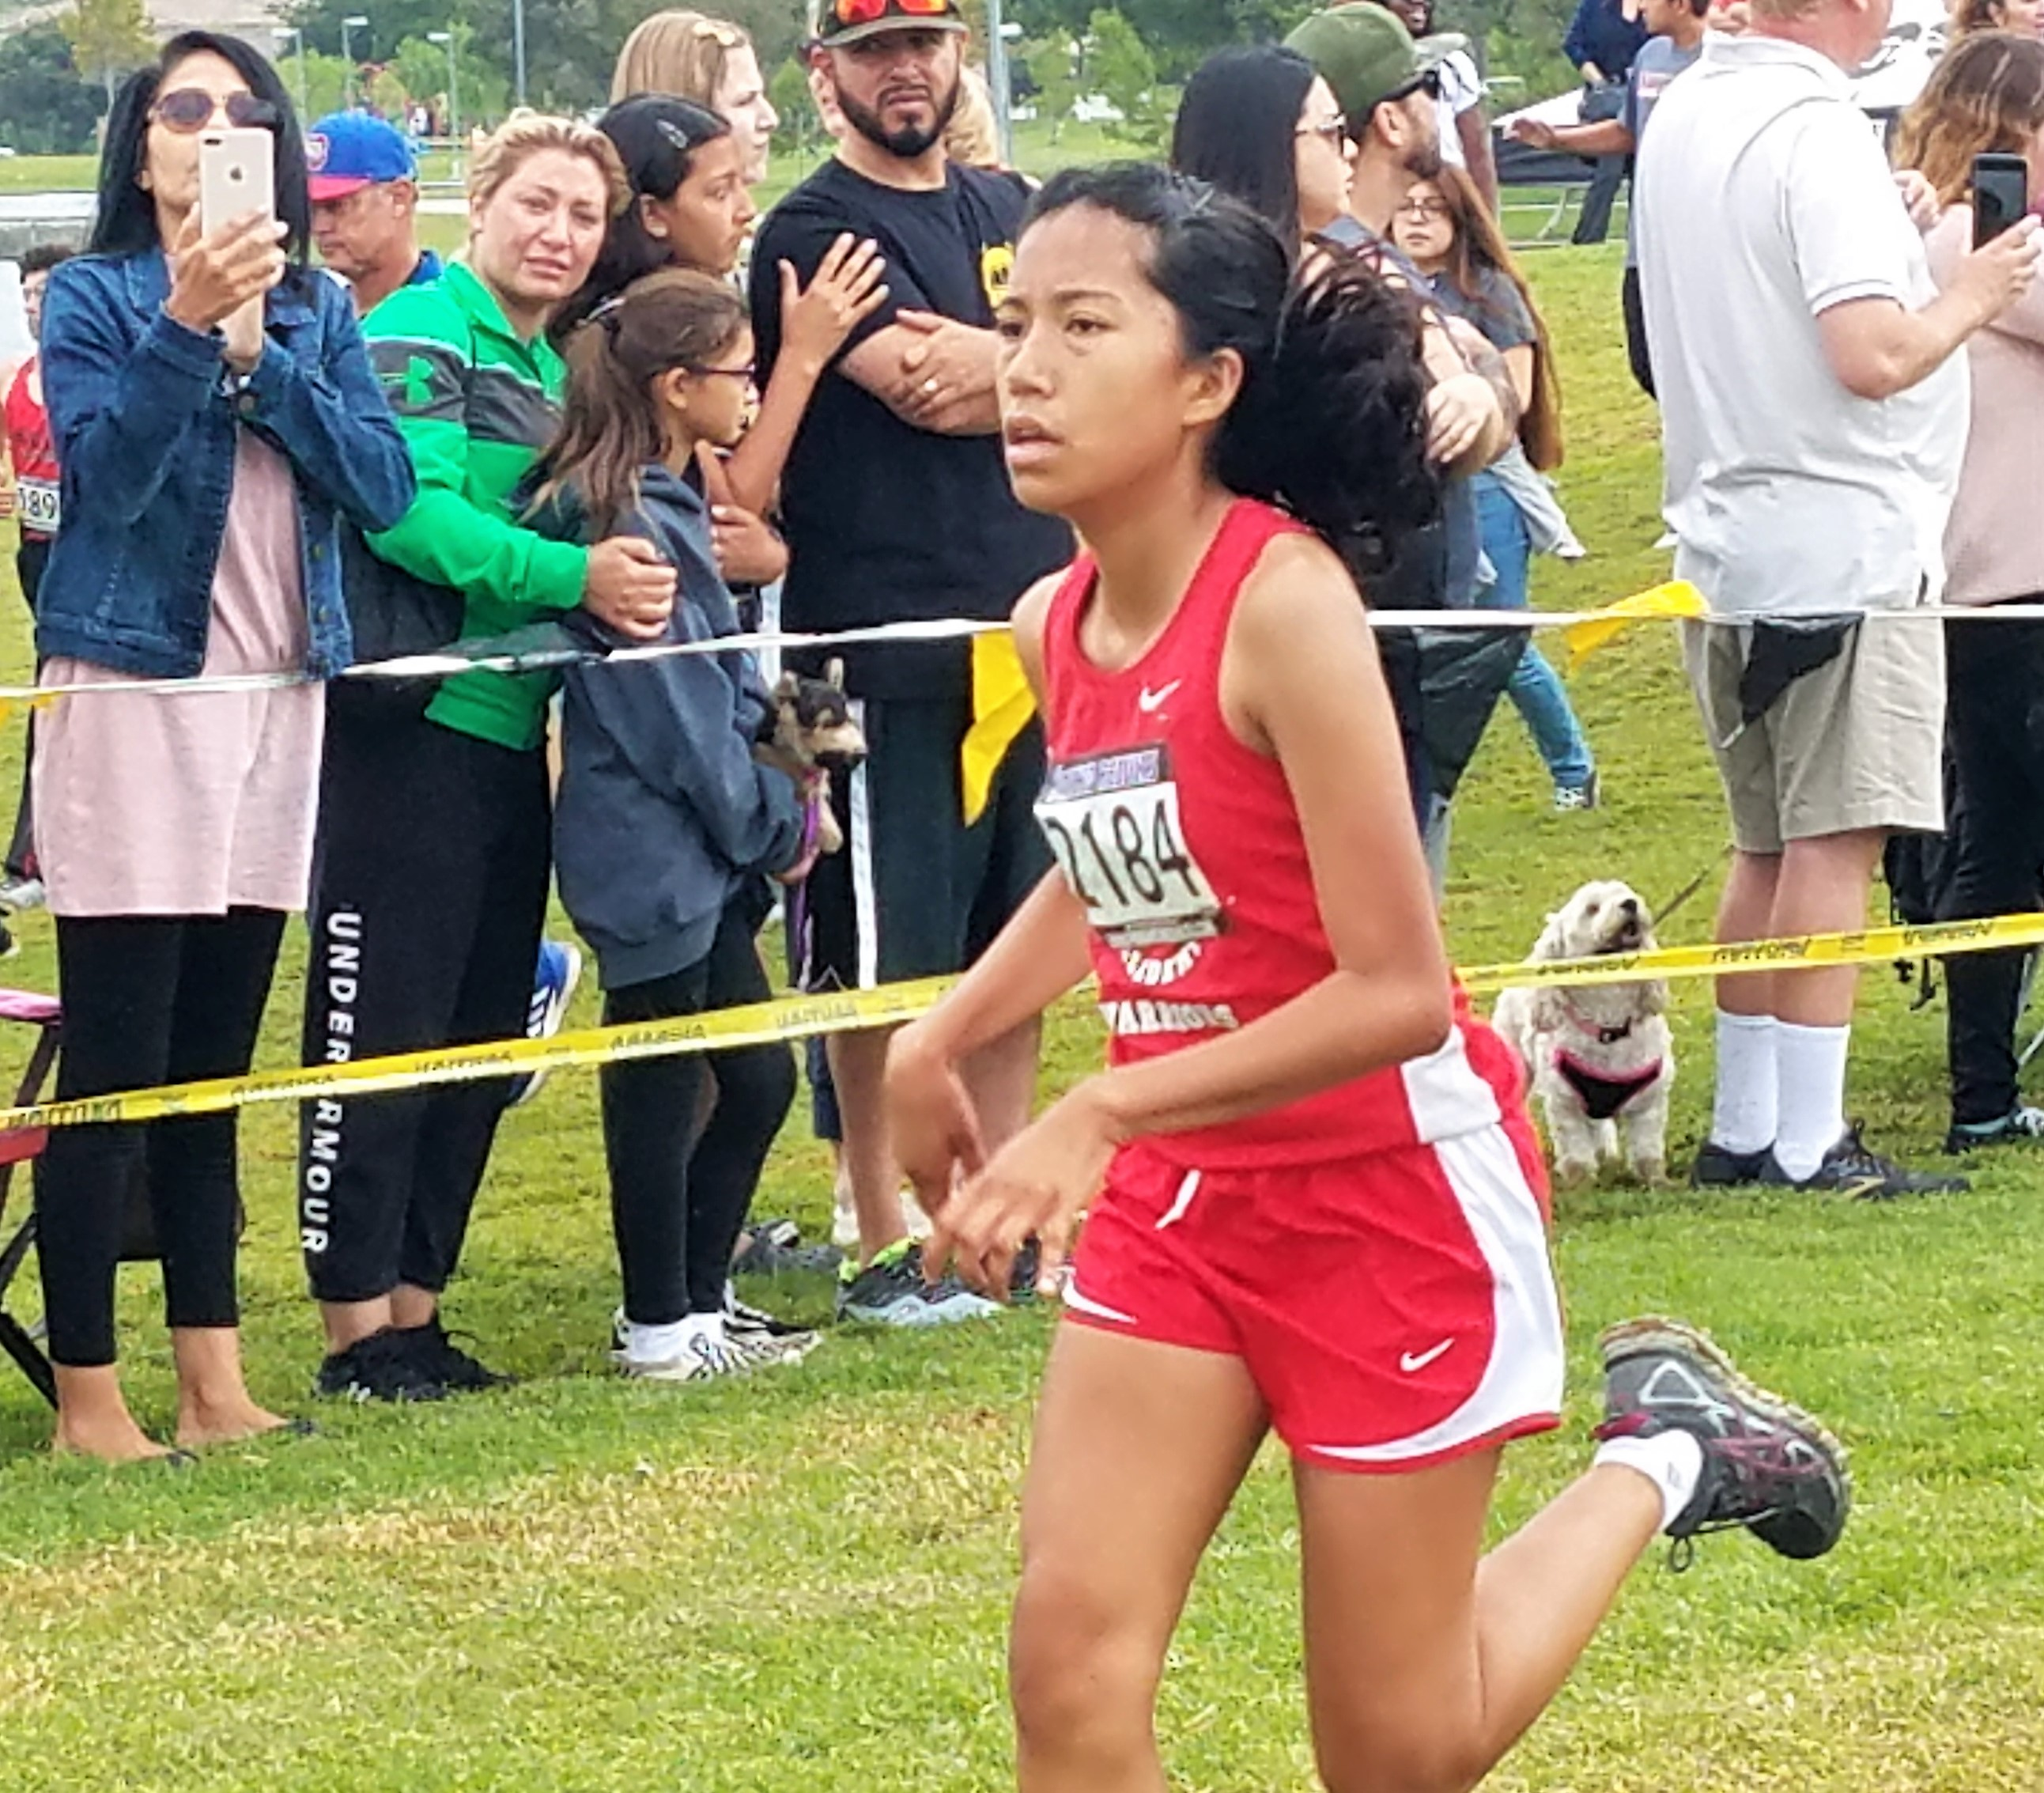 Cross Country Opens 2018 Season at The Great Cow Run